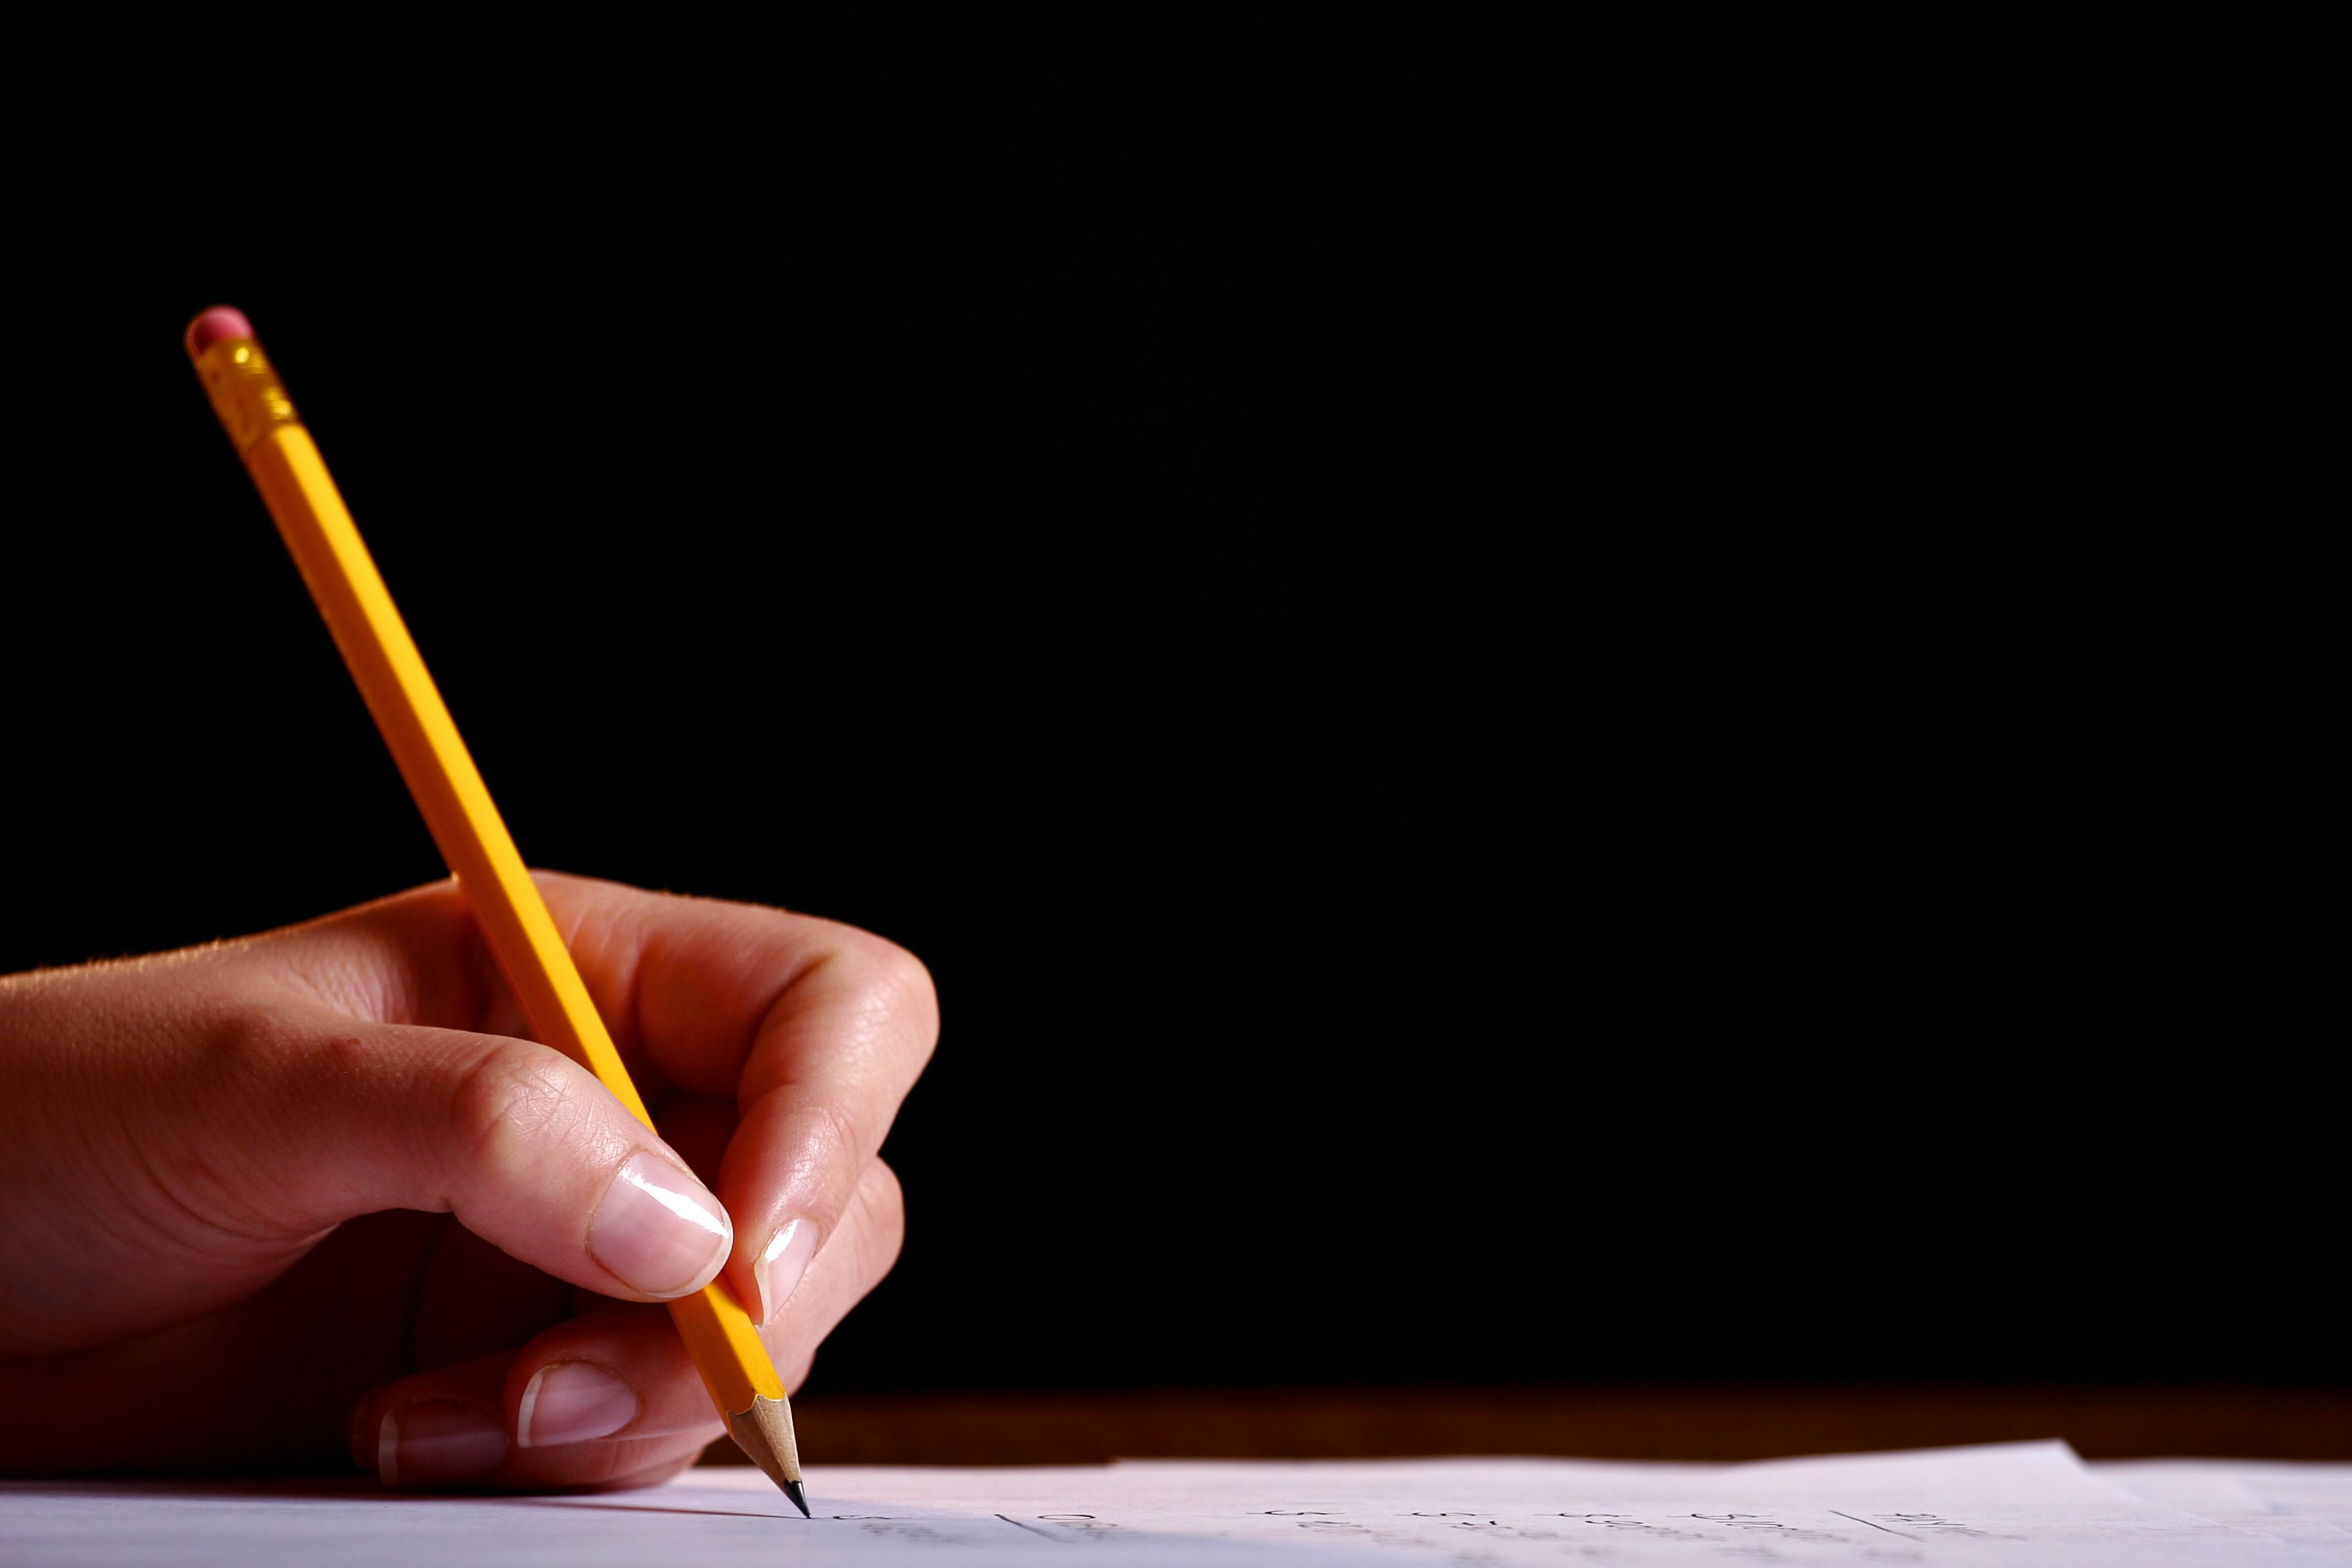 Creative Writing Prompts For High School Students